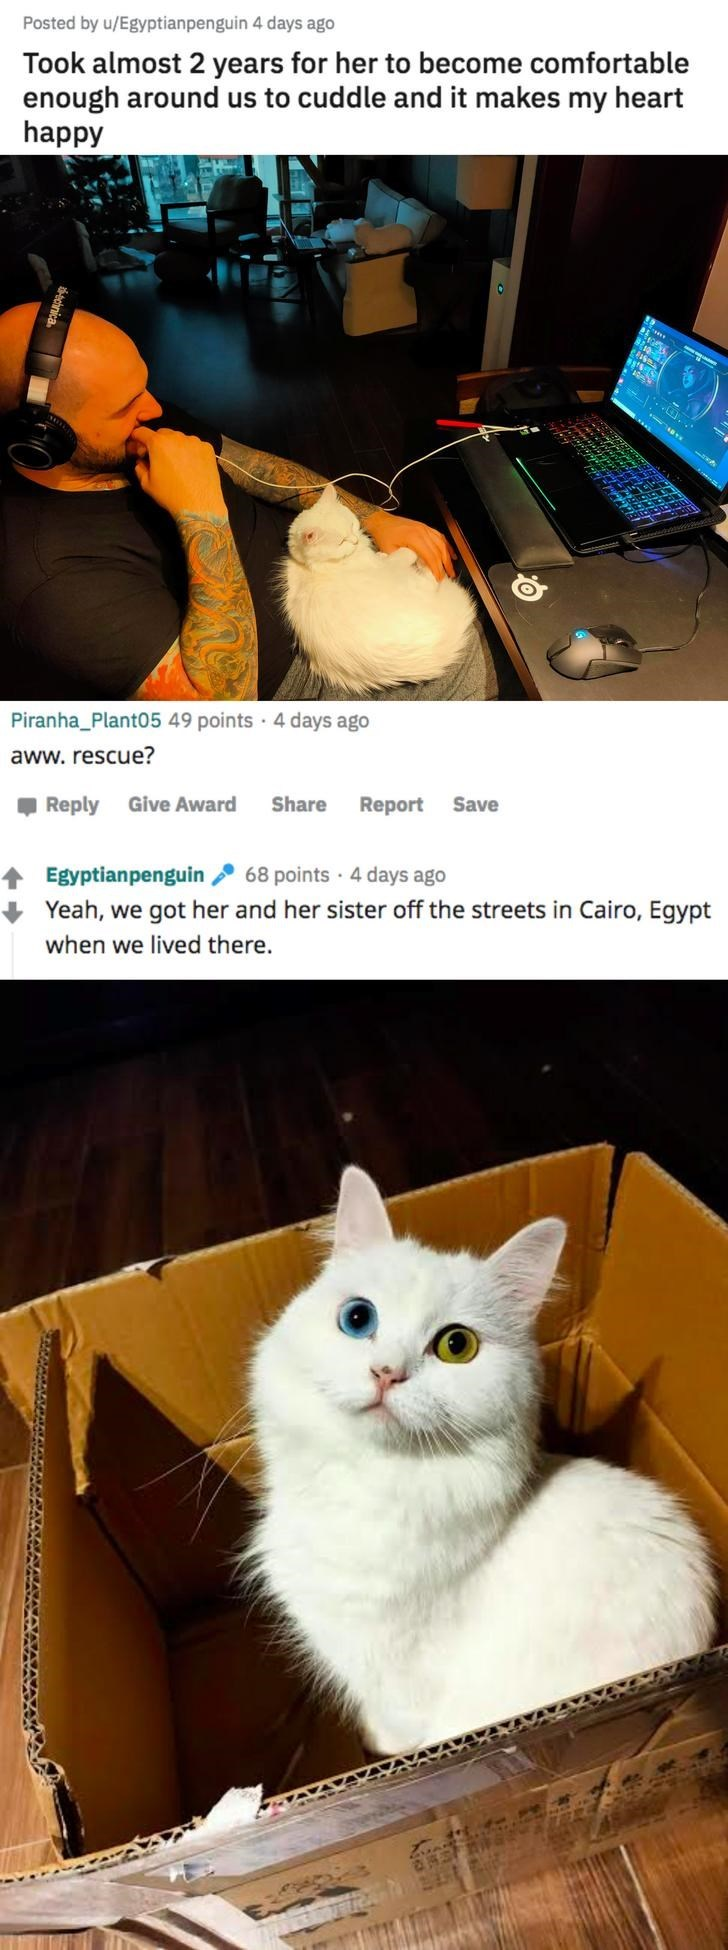 Cat - Posted by u/Egyptianpenguin 4 days ago Took almost 2 years for her to become comfortable enough around us to cuddle and it makes my heart happy Piranha_Plant05 49 points · 4 days ago aww. rescue? , Reply Give Award Share Report Save Egyptianpenguin 68 points 4 days ago Yeah, we got her and her sister off the streets in Cairo, Egypt when we lived there. cinica.